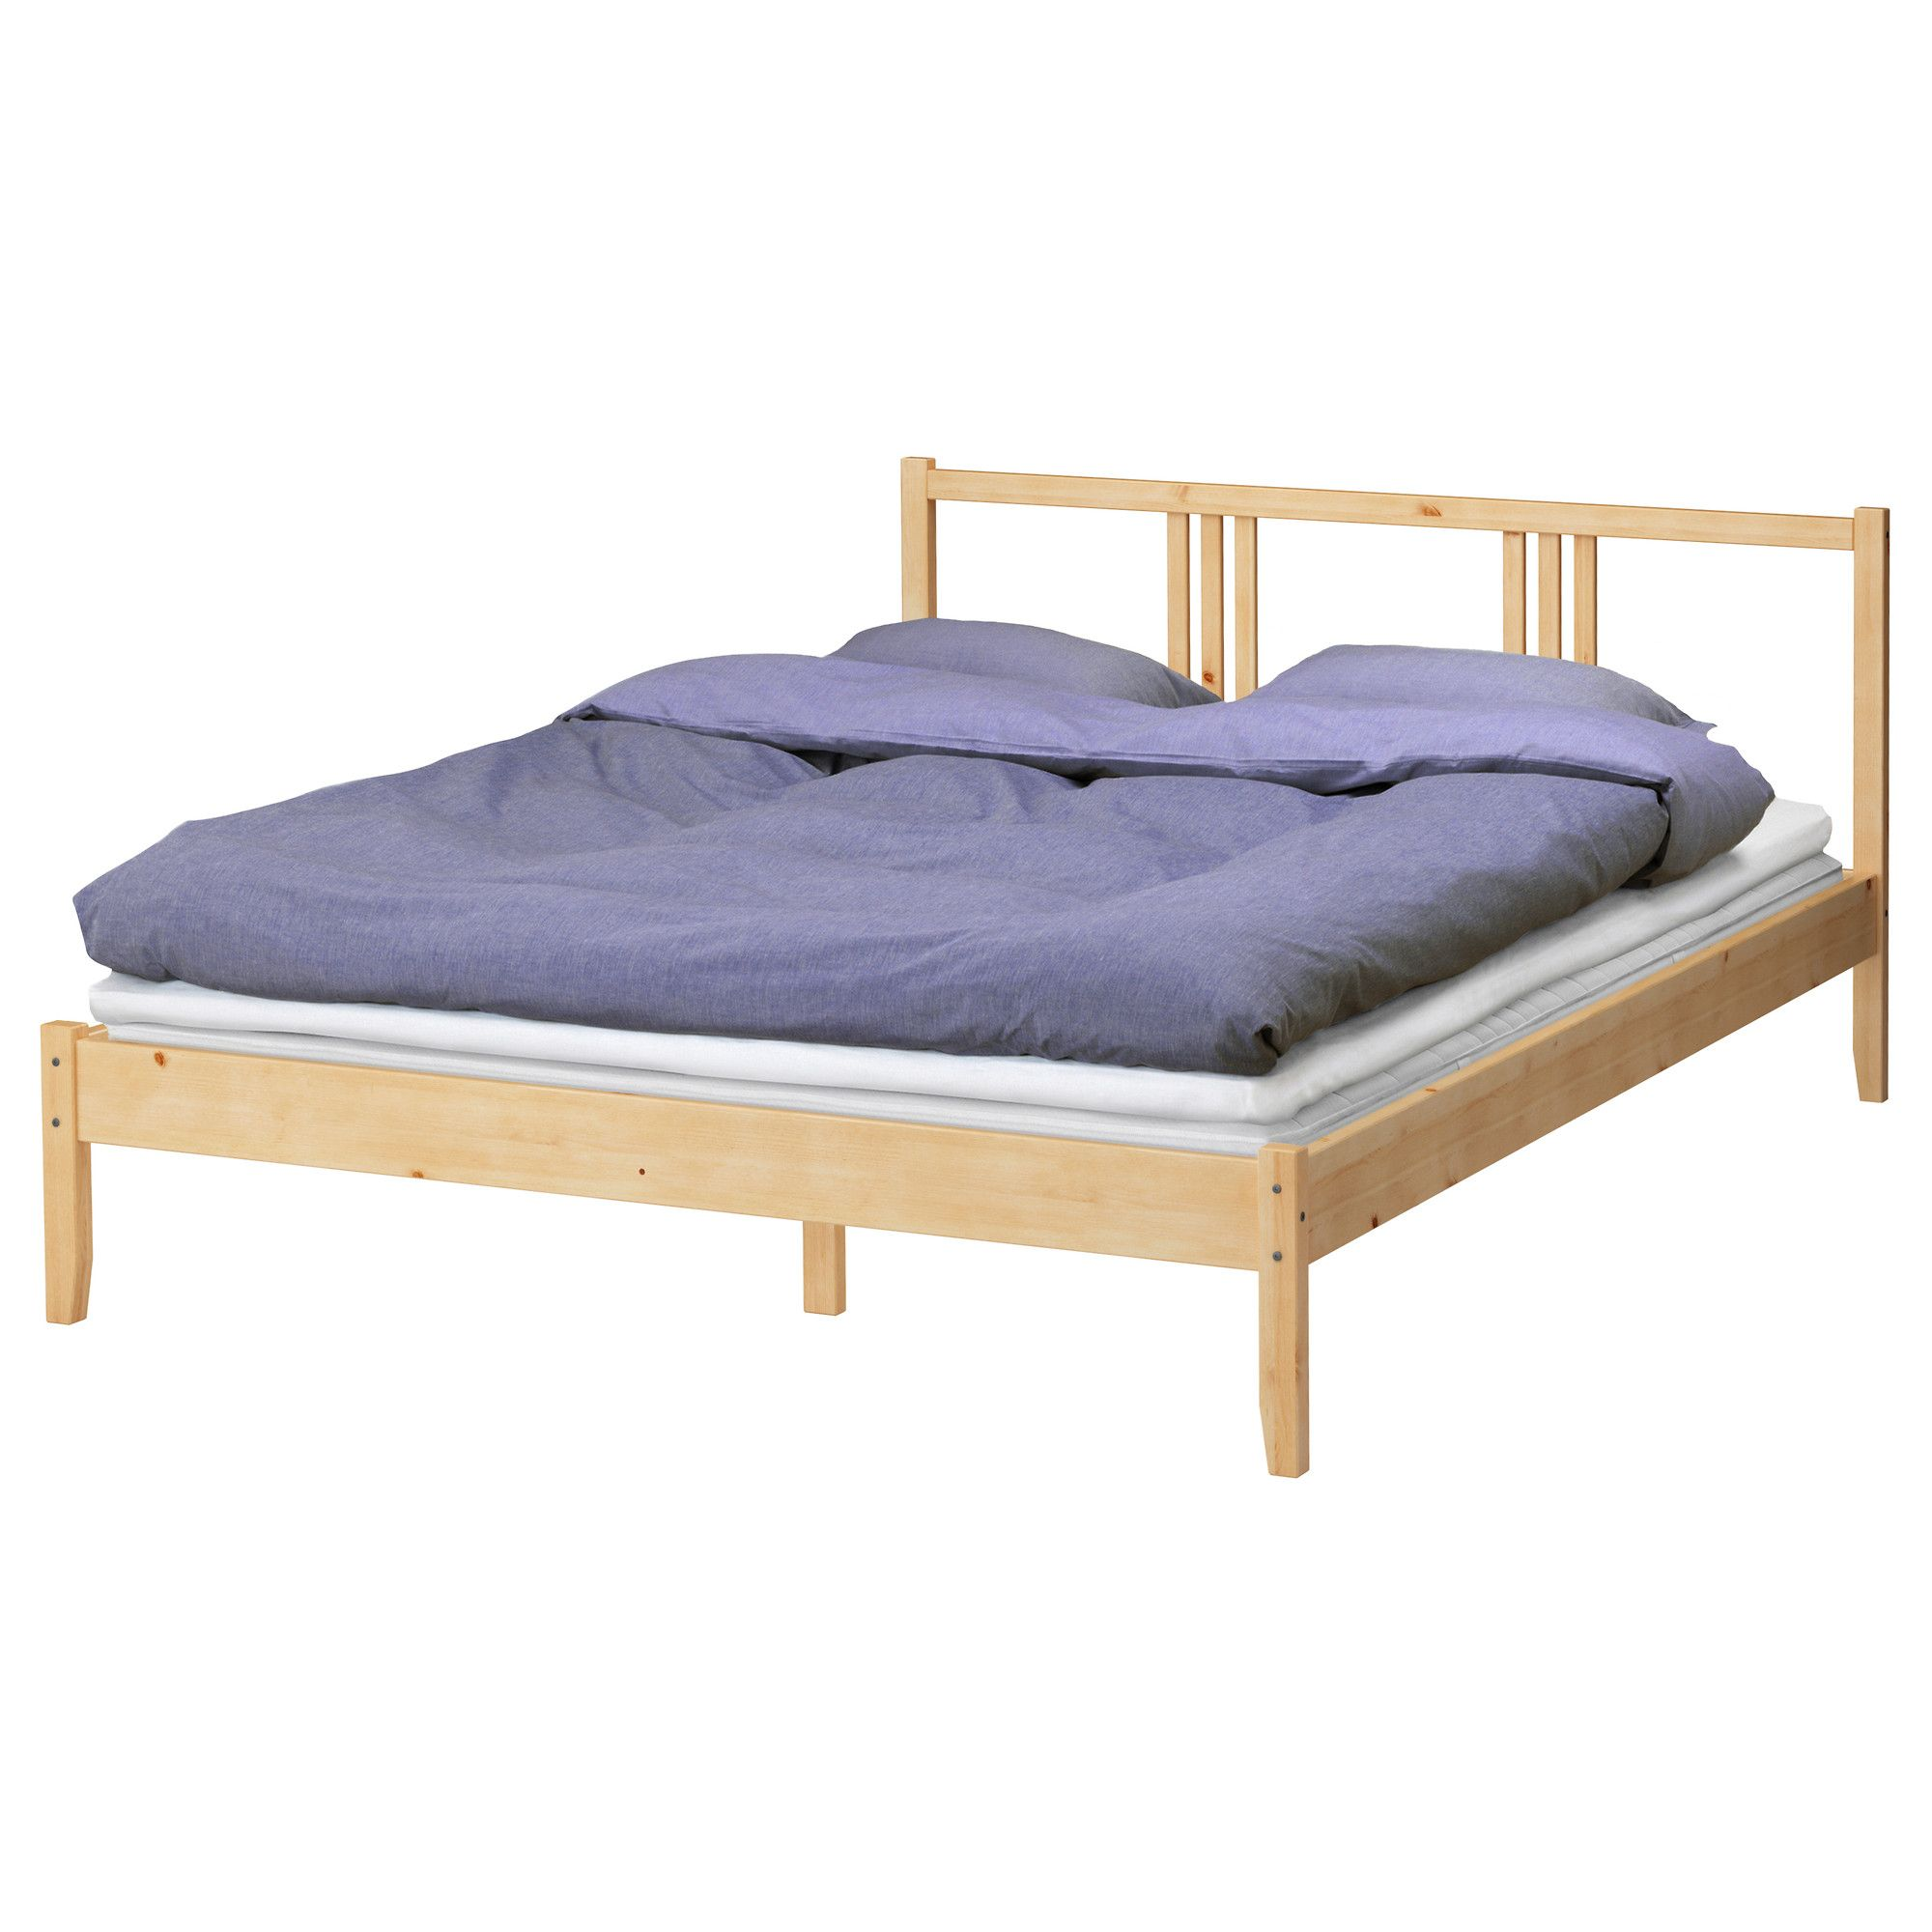 Us Furniture And Home Furnishings Ikea Bed Frames Cheap Bed